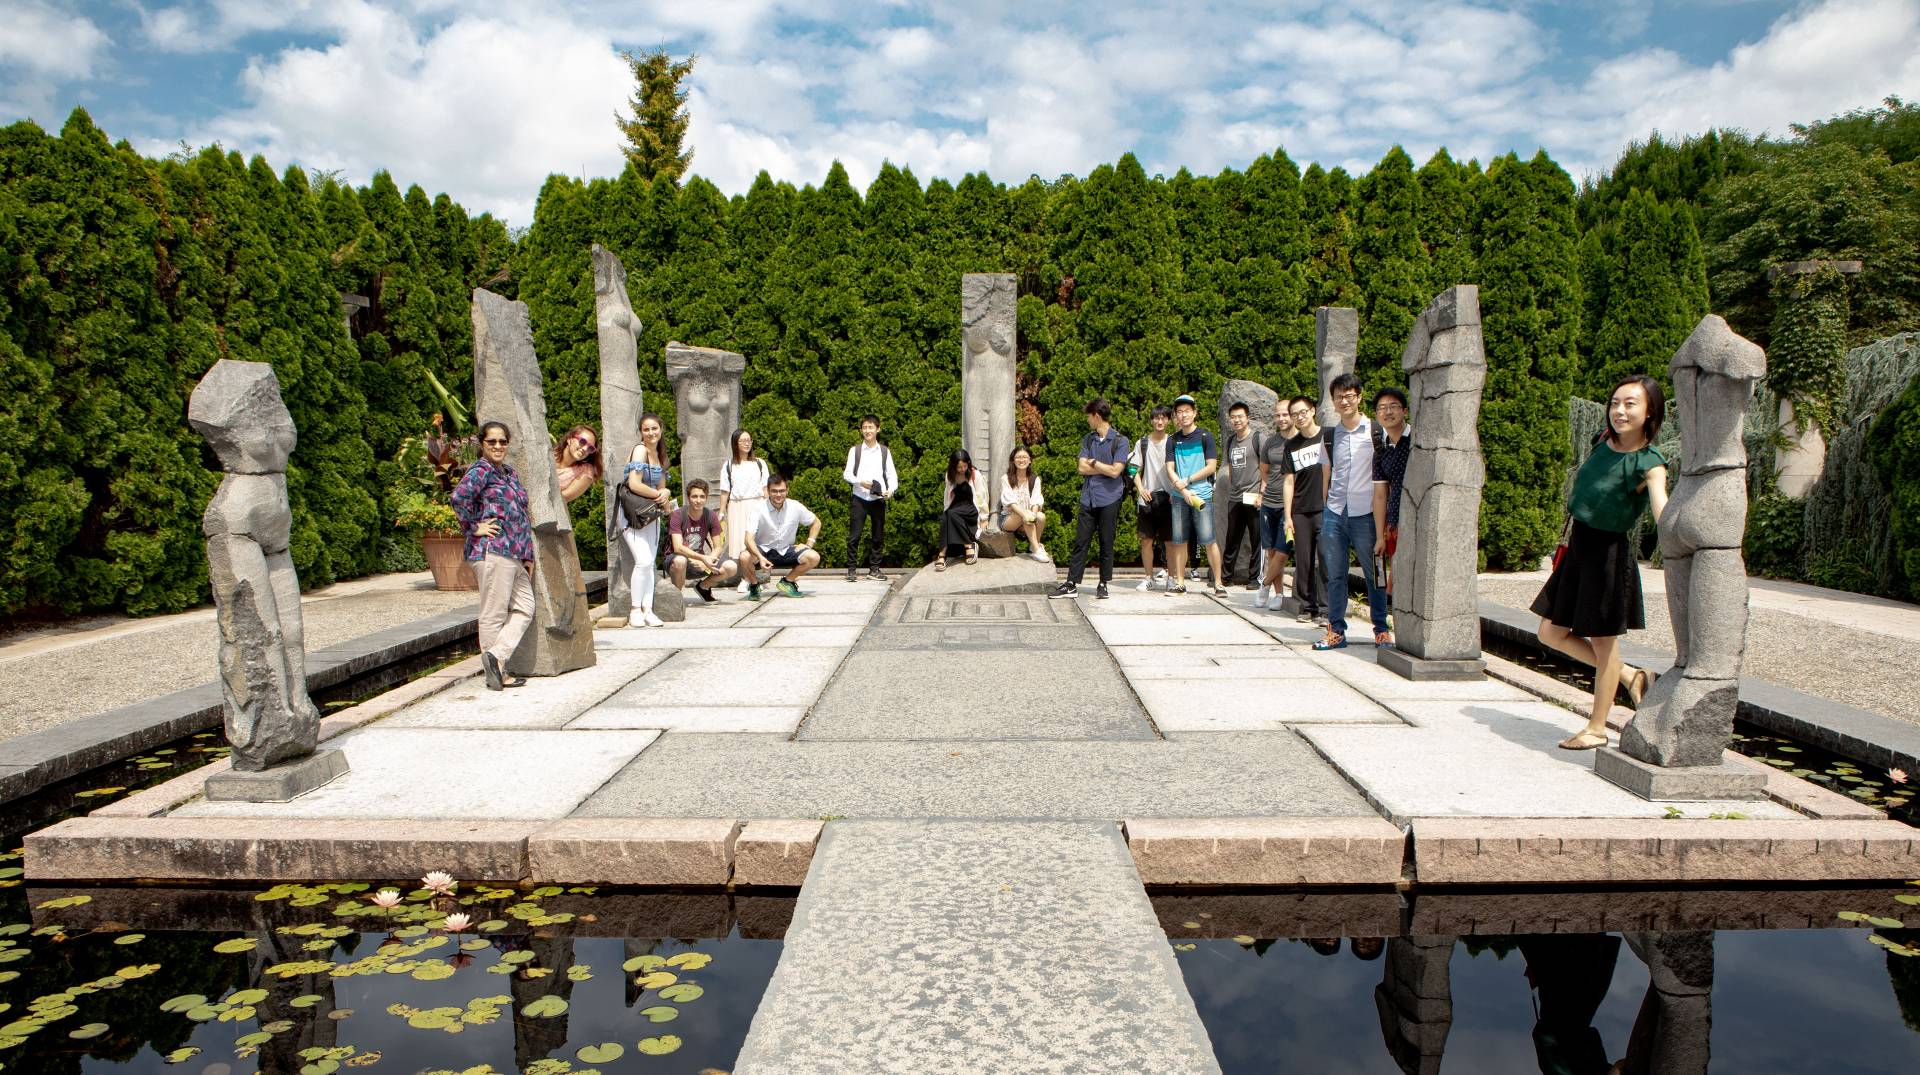 International students visiting Grounds For Sculpture